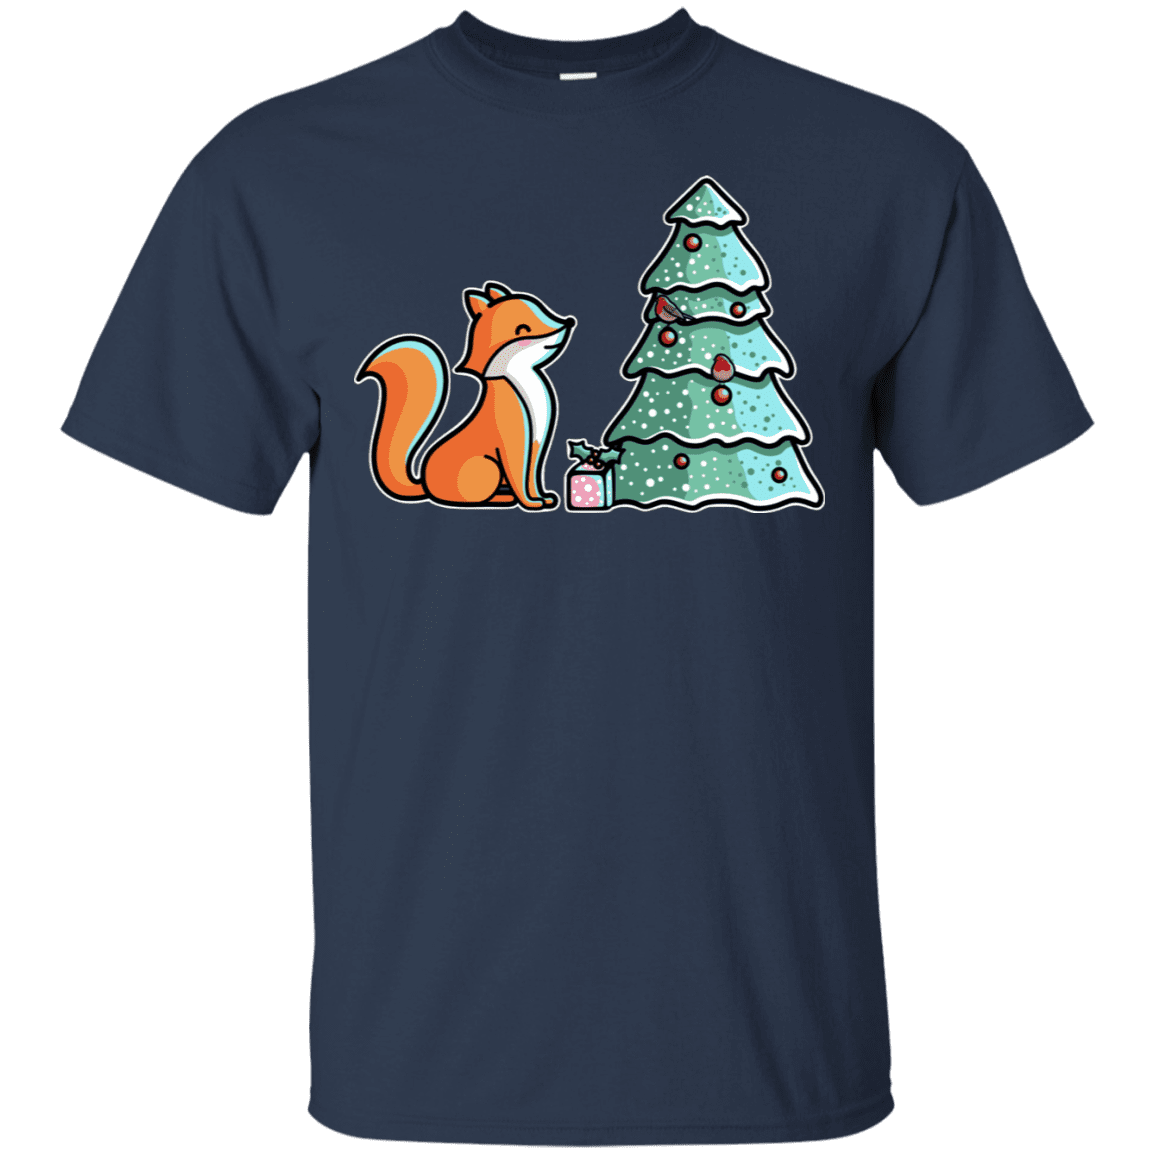 T-Shirts Navy / S Kawaii Cute Christmas Fox T-Shirt